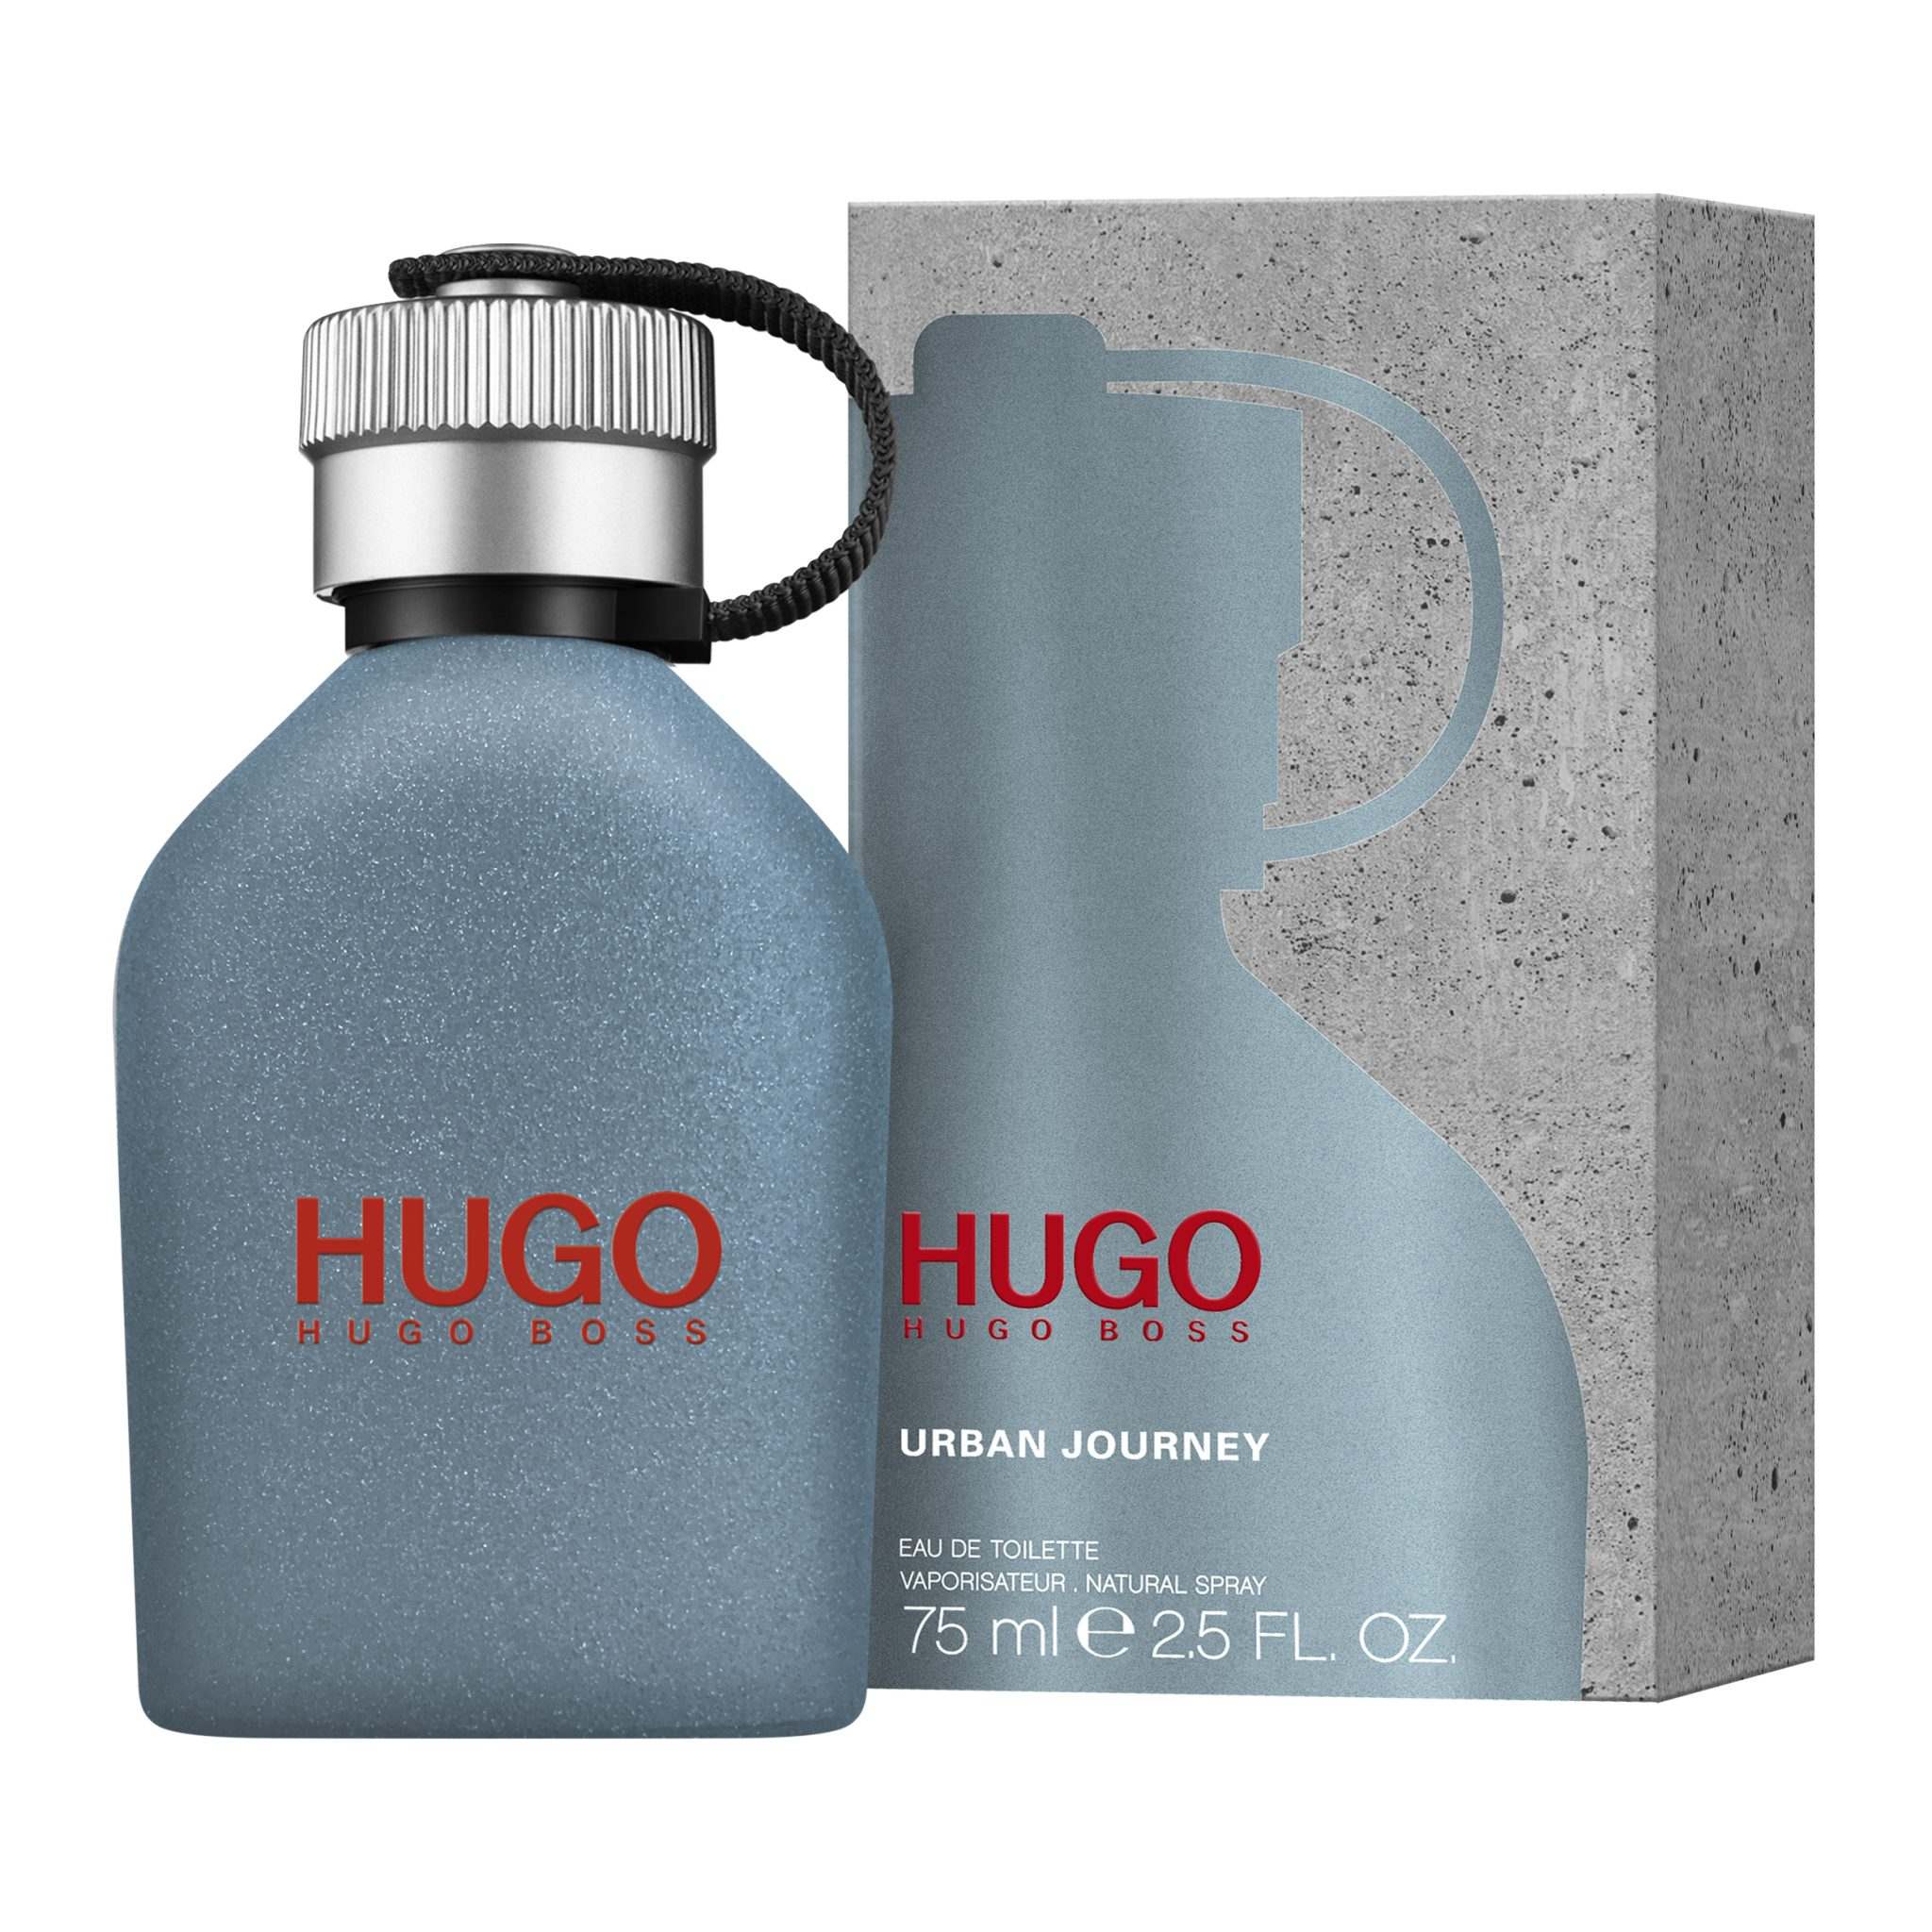 HUGO_Urban_Journey_75ml_Flacon_Carton